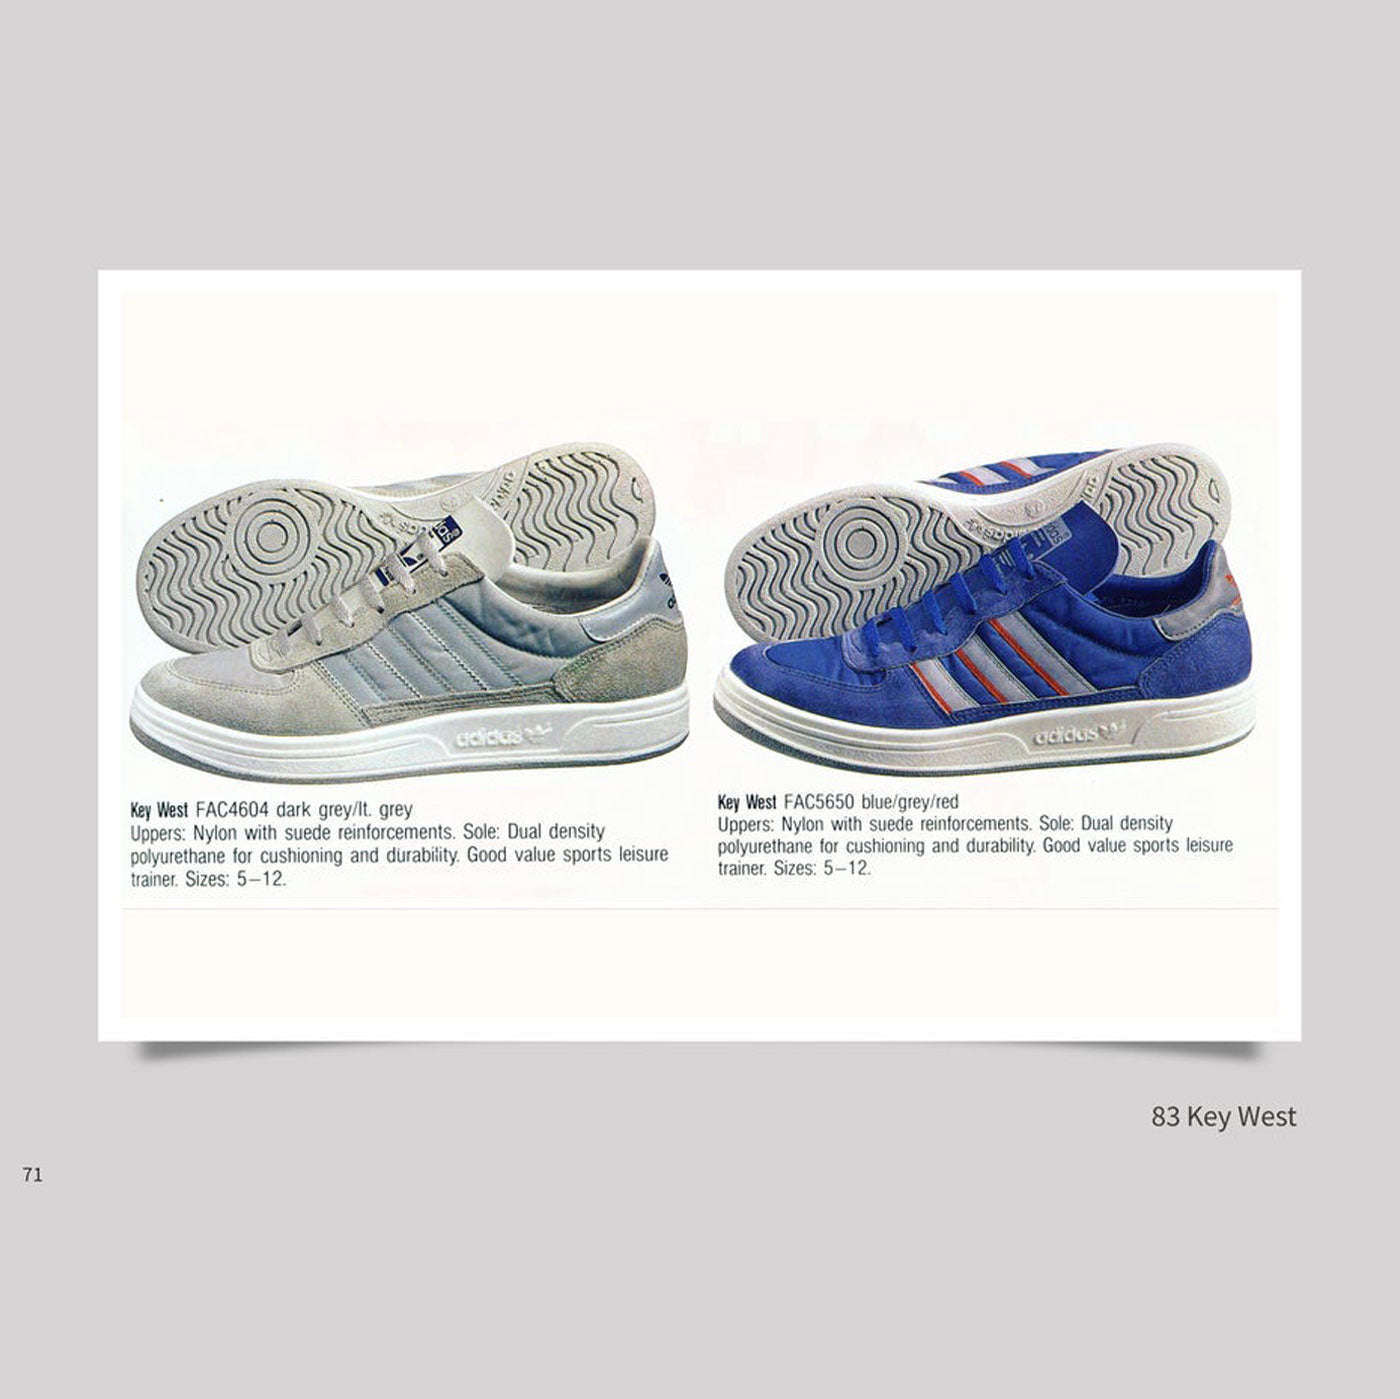 official photos 79295 566a6 Vintage Adidas Schuhe - North America - Book 2 – Colours May ...